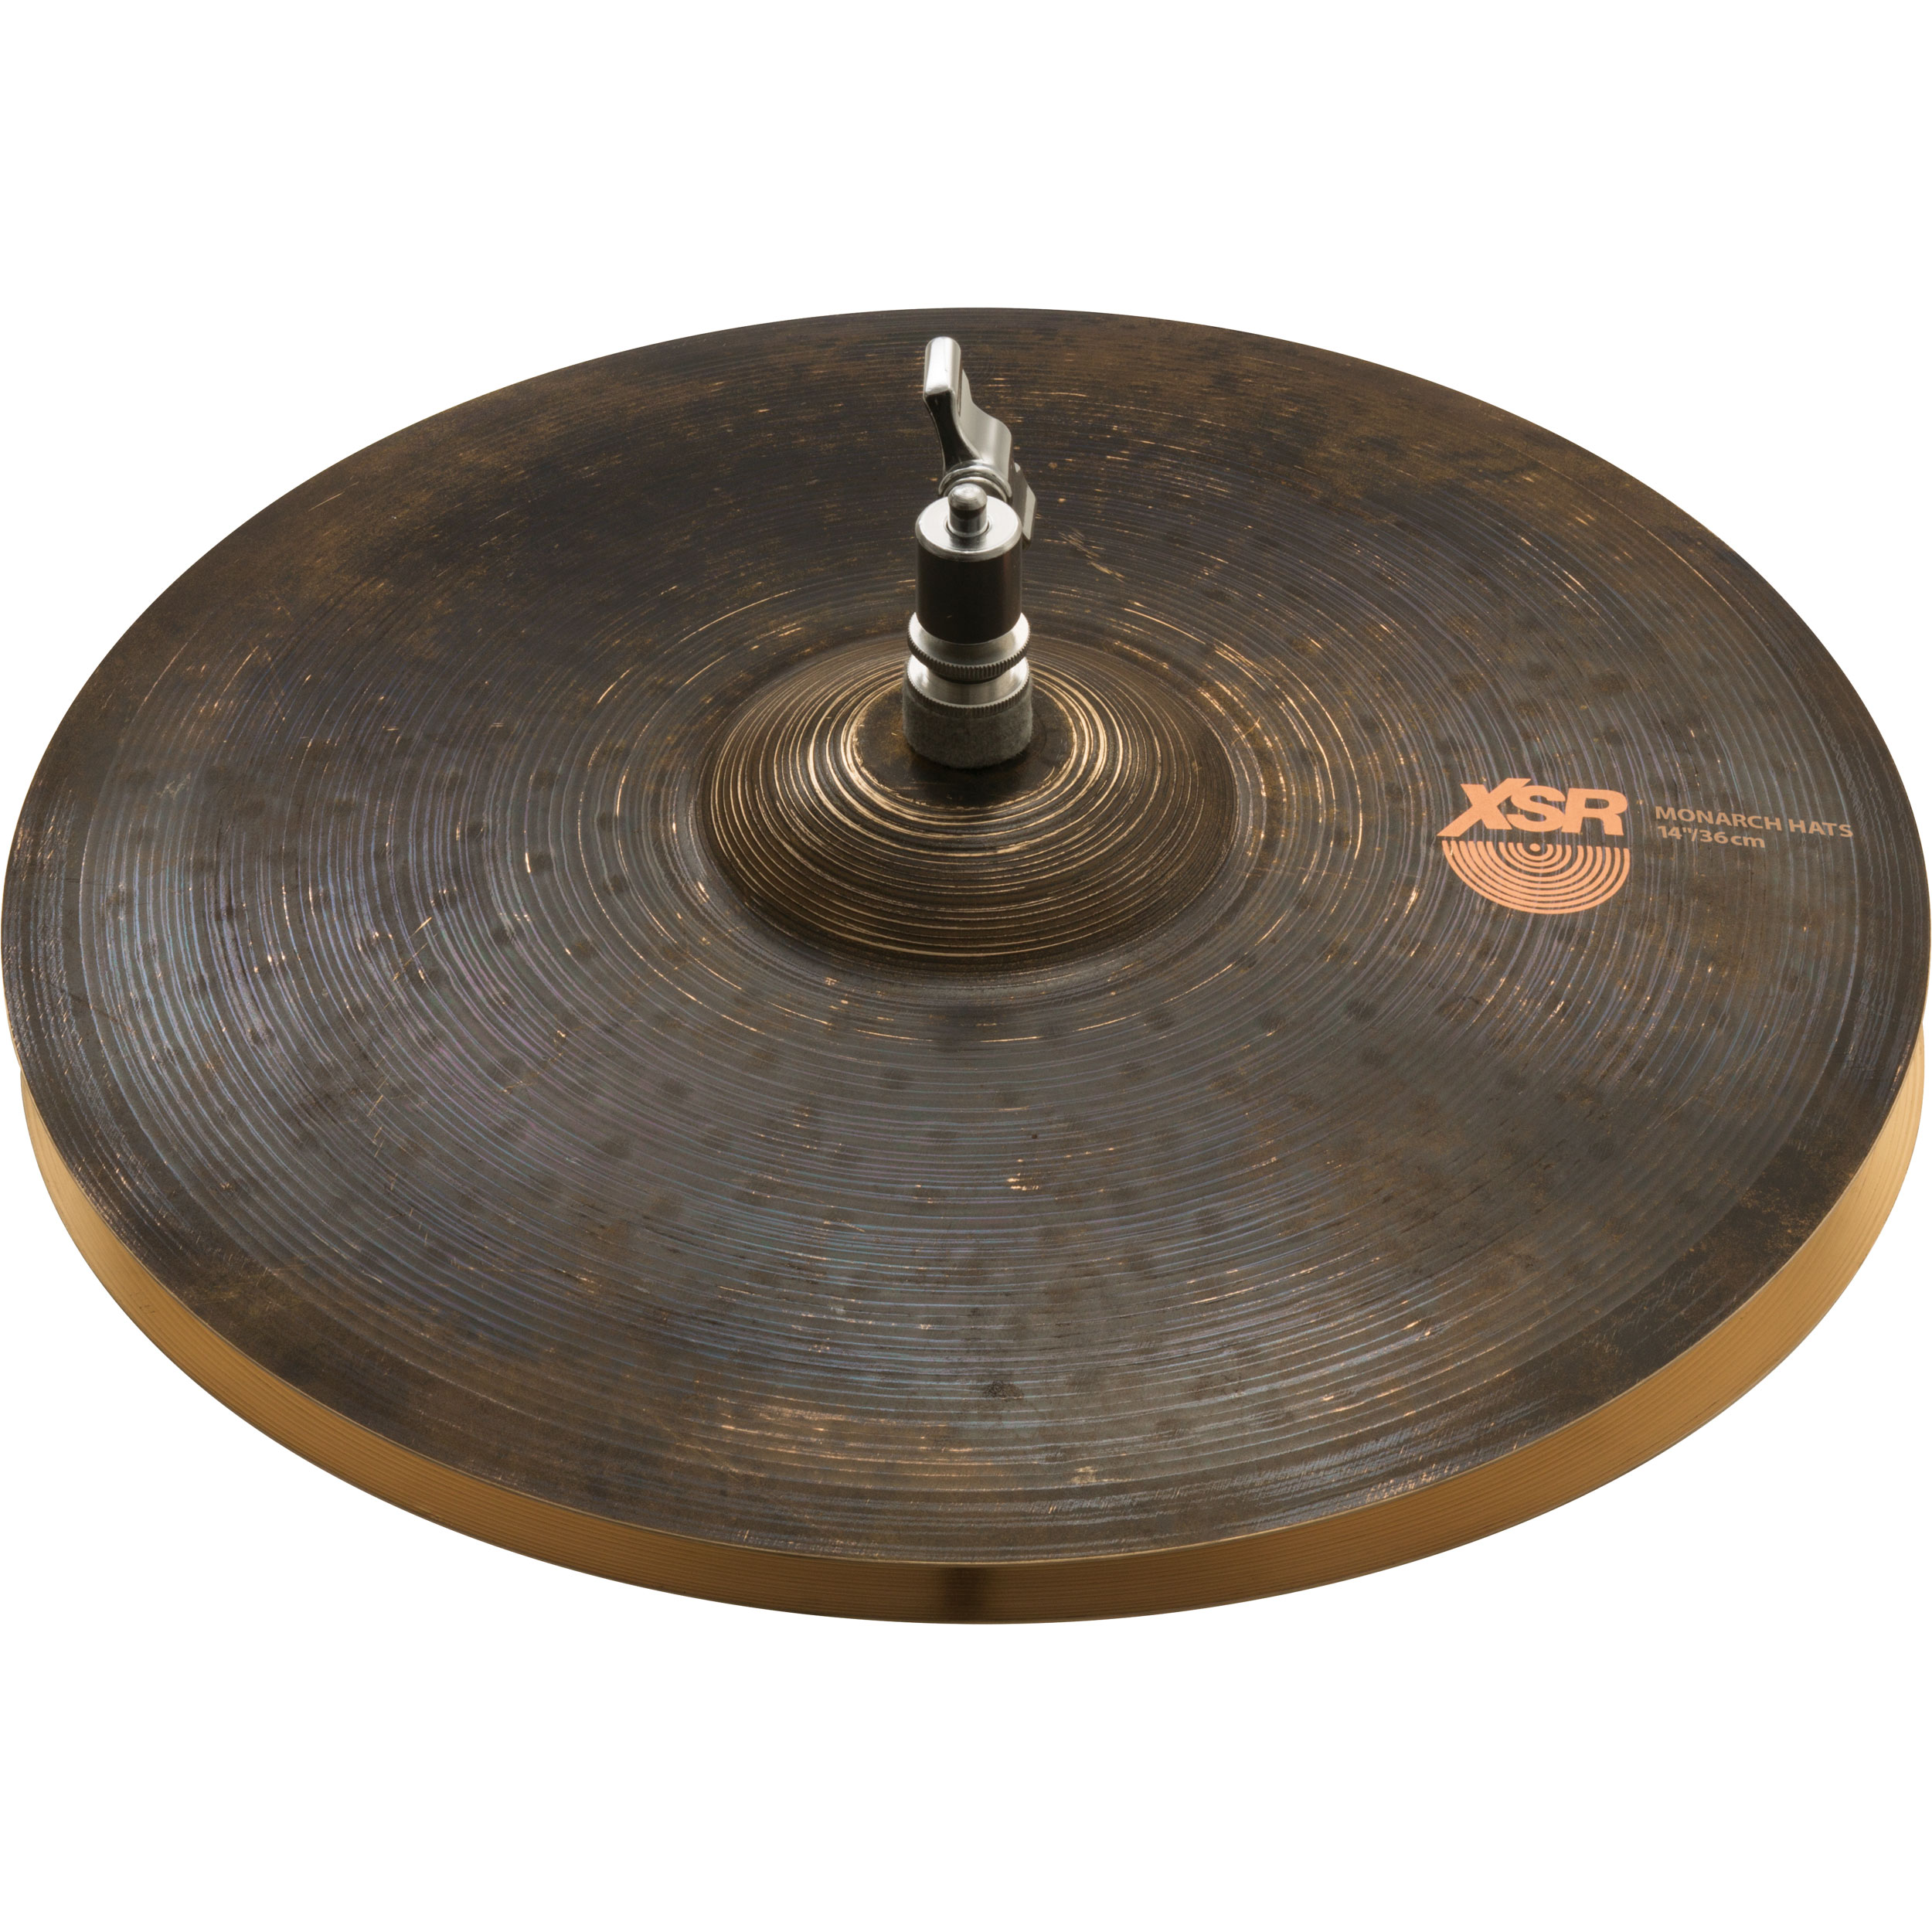 "Sabian 14"" Big and Ugly XSR Monarch Hi Hat Cymbals"